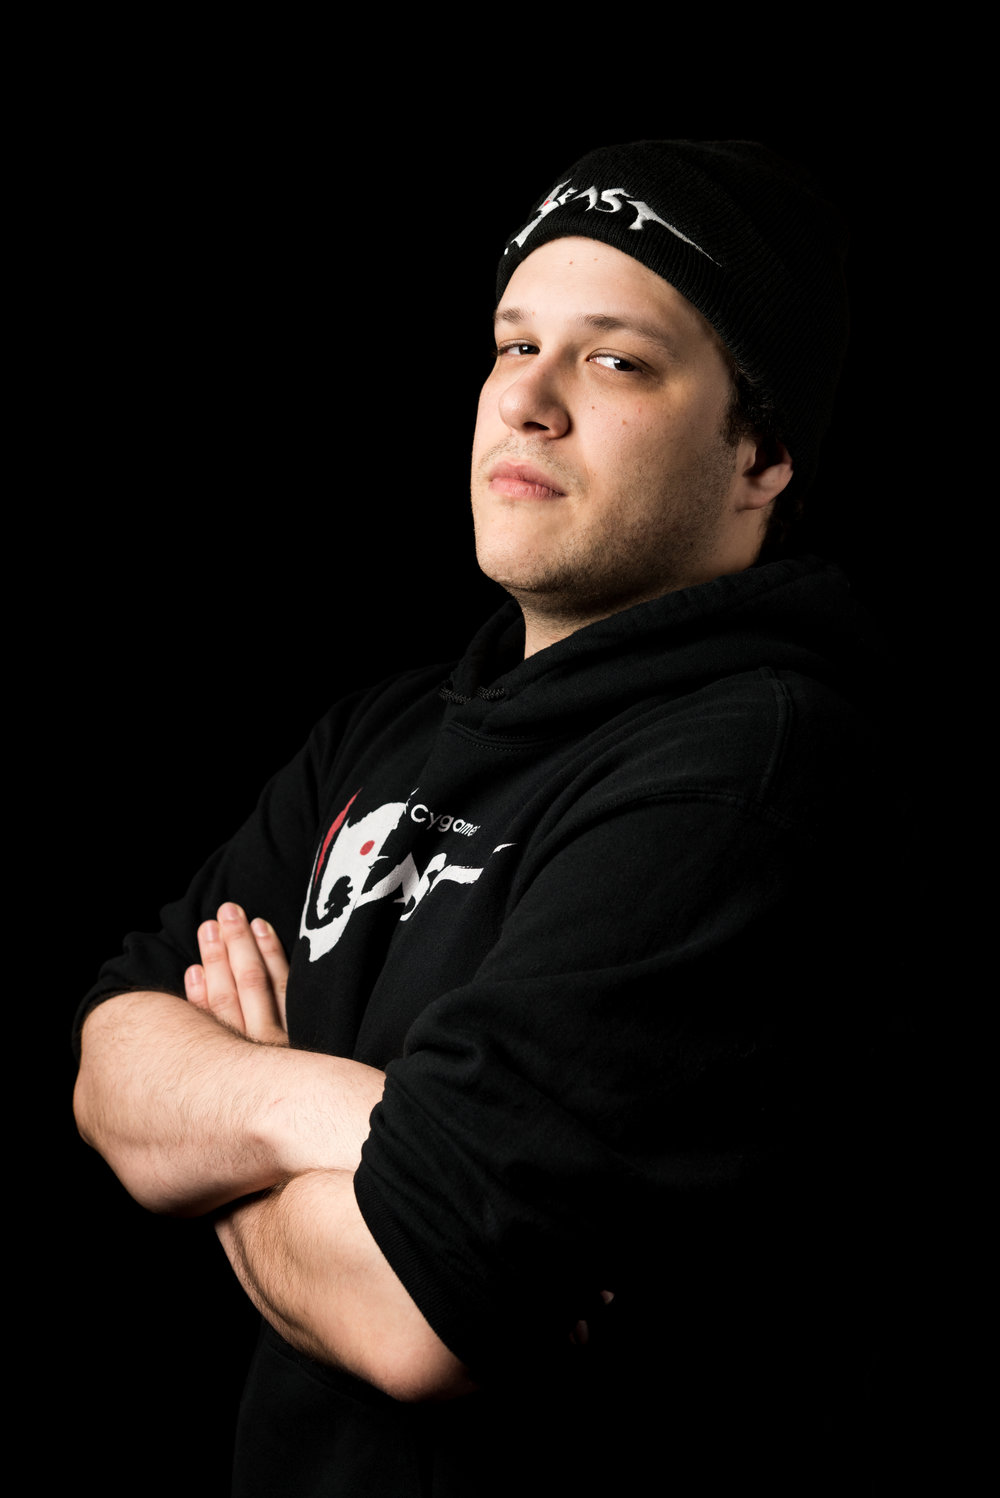 "PR Balrog - Eduardo ""PR Balrog"" Perez is regarded as Puerto Rico's greatest fighting game player. He is a consistently strong finisher at EVO each year, and is an exceptionally versatile competitor, exceling in a wide range of titles, including Street Fighter, Marvel vs. Capcom, Injustice, and others.Eduardo's professional career began with a surprising 5th-place finish in SFIV at EVO 2009. In 2012, he claimed 3rdplace in Super Street Fighter IV: Arcade Edition (SSFIV: AE) at EVO. In the following year, he continued this successful streak by placing 4thin SSFIV: AEat EVO 2013.Eduardo's risk-taking, intimidating and aggressive play style, is well balanced by his endearing and fun personality, making him a community favorite.Twitter @PRBalrogFacebook @PRBalrogInstagram @PR BalrogTwitch @PR_Balrog"